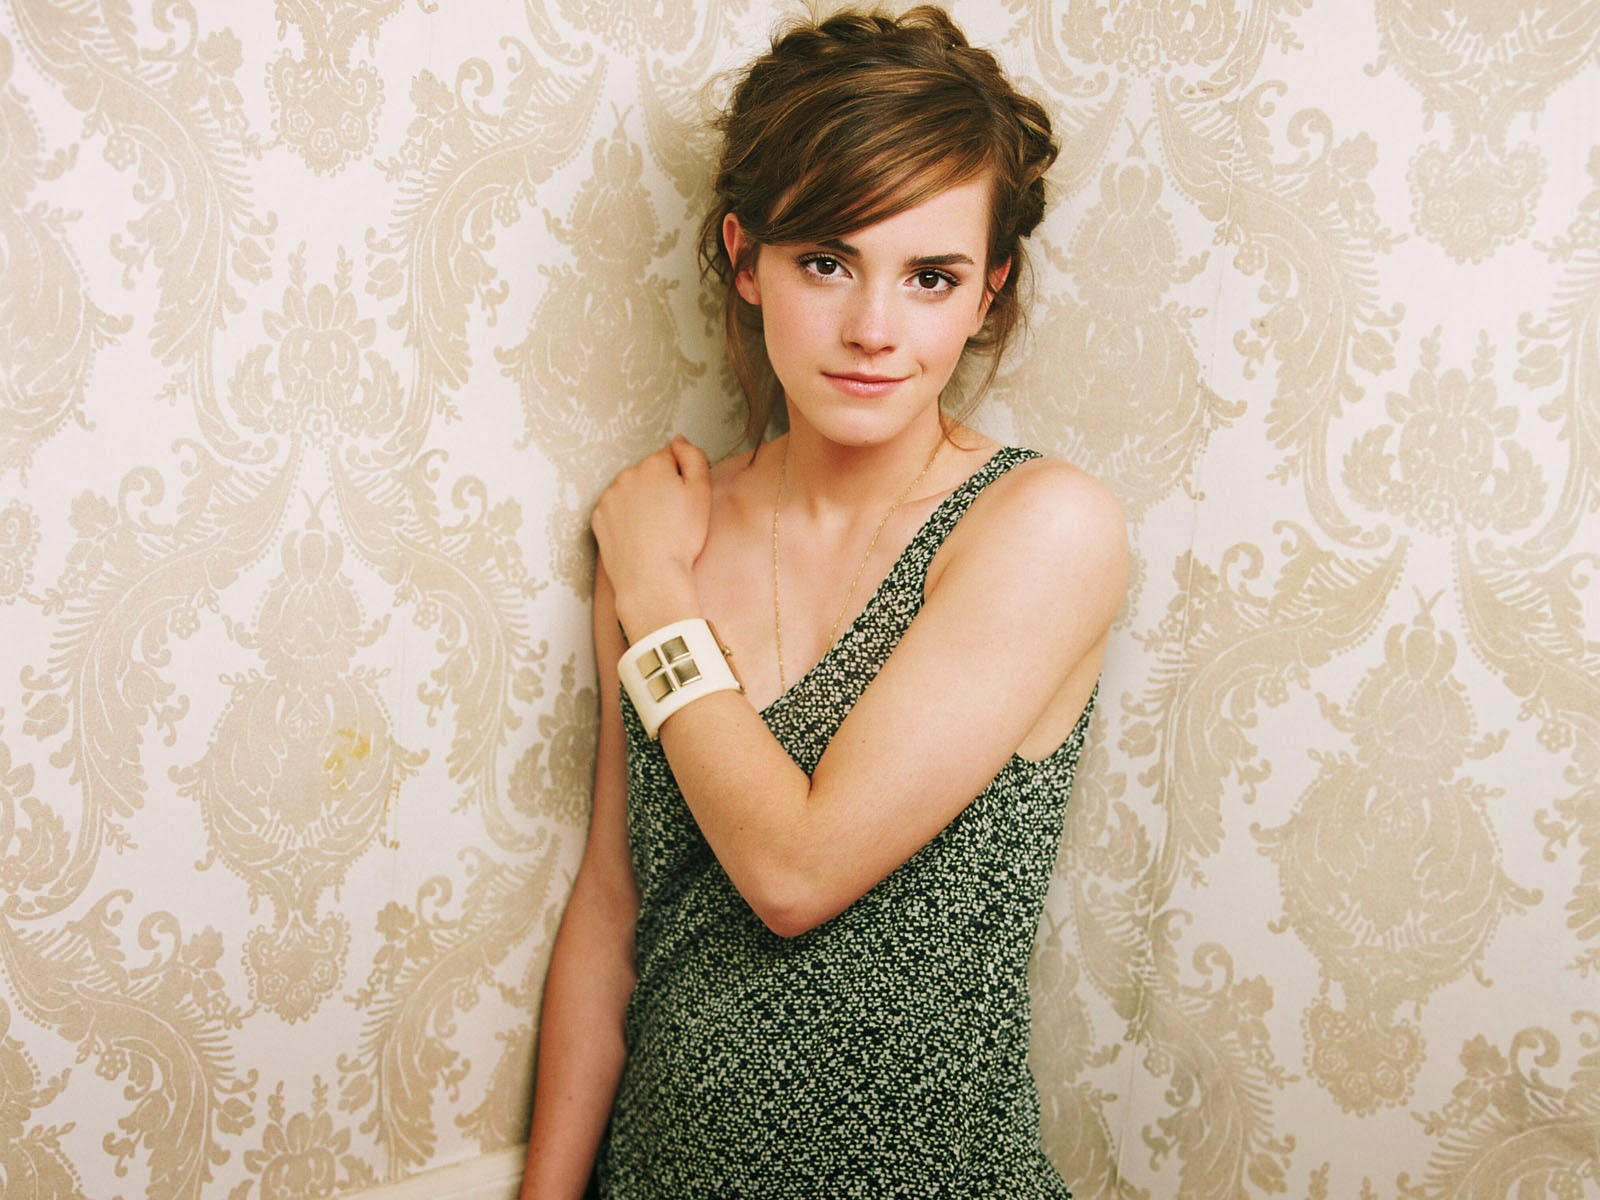 Download emma watson hd wallpapers free hd wallpapers - Emma watson wallpaper free download ...